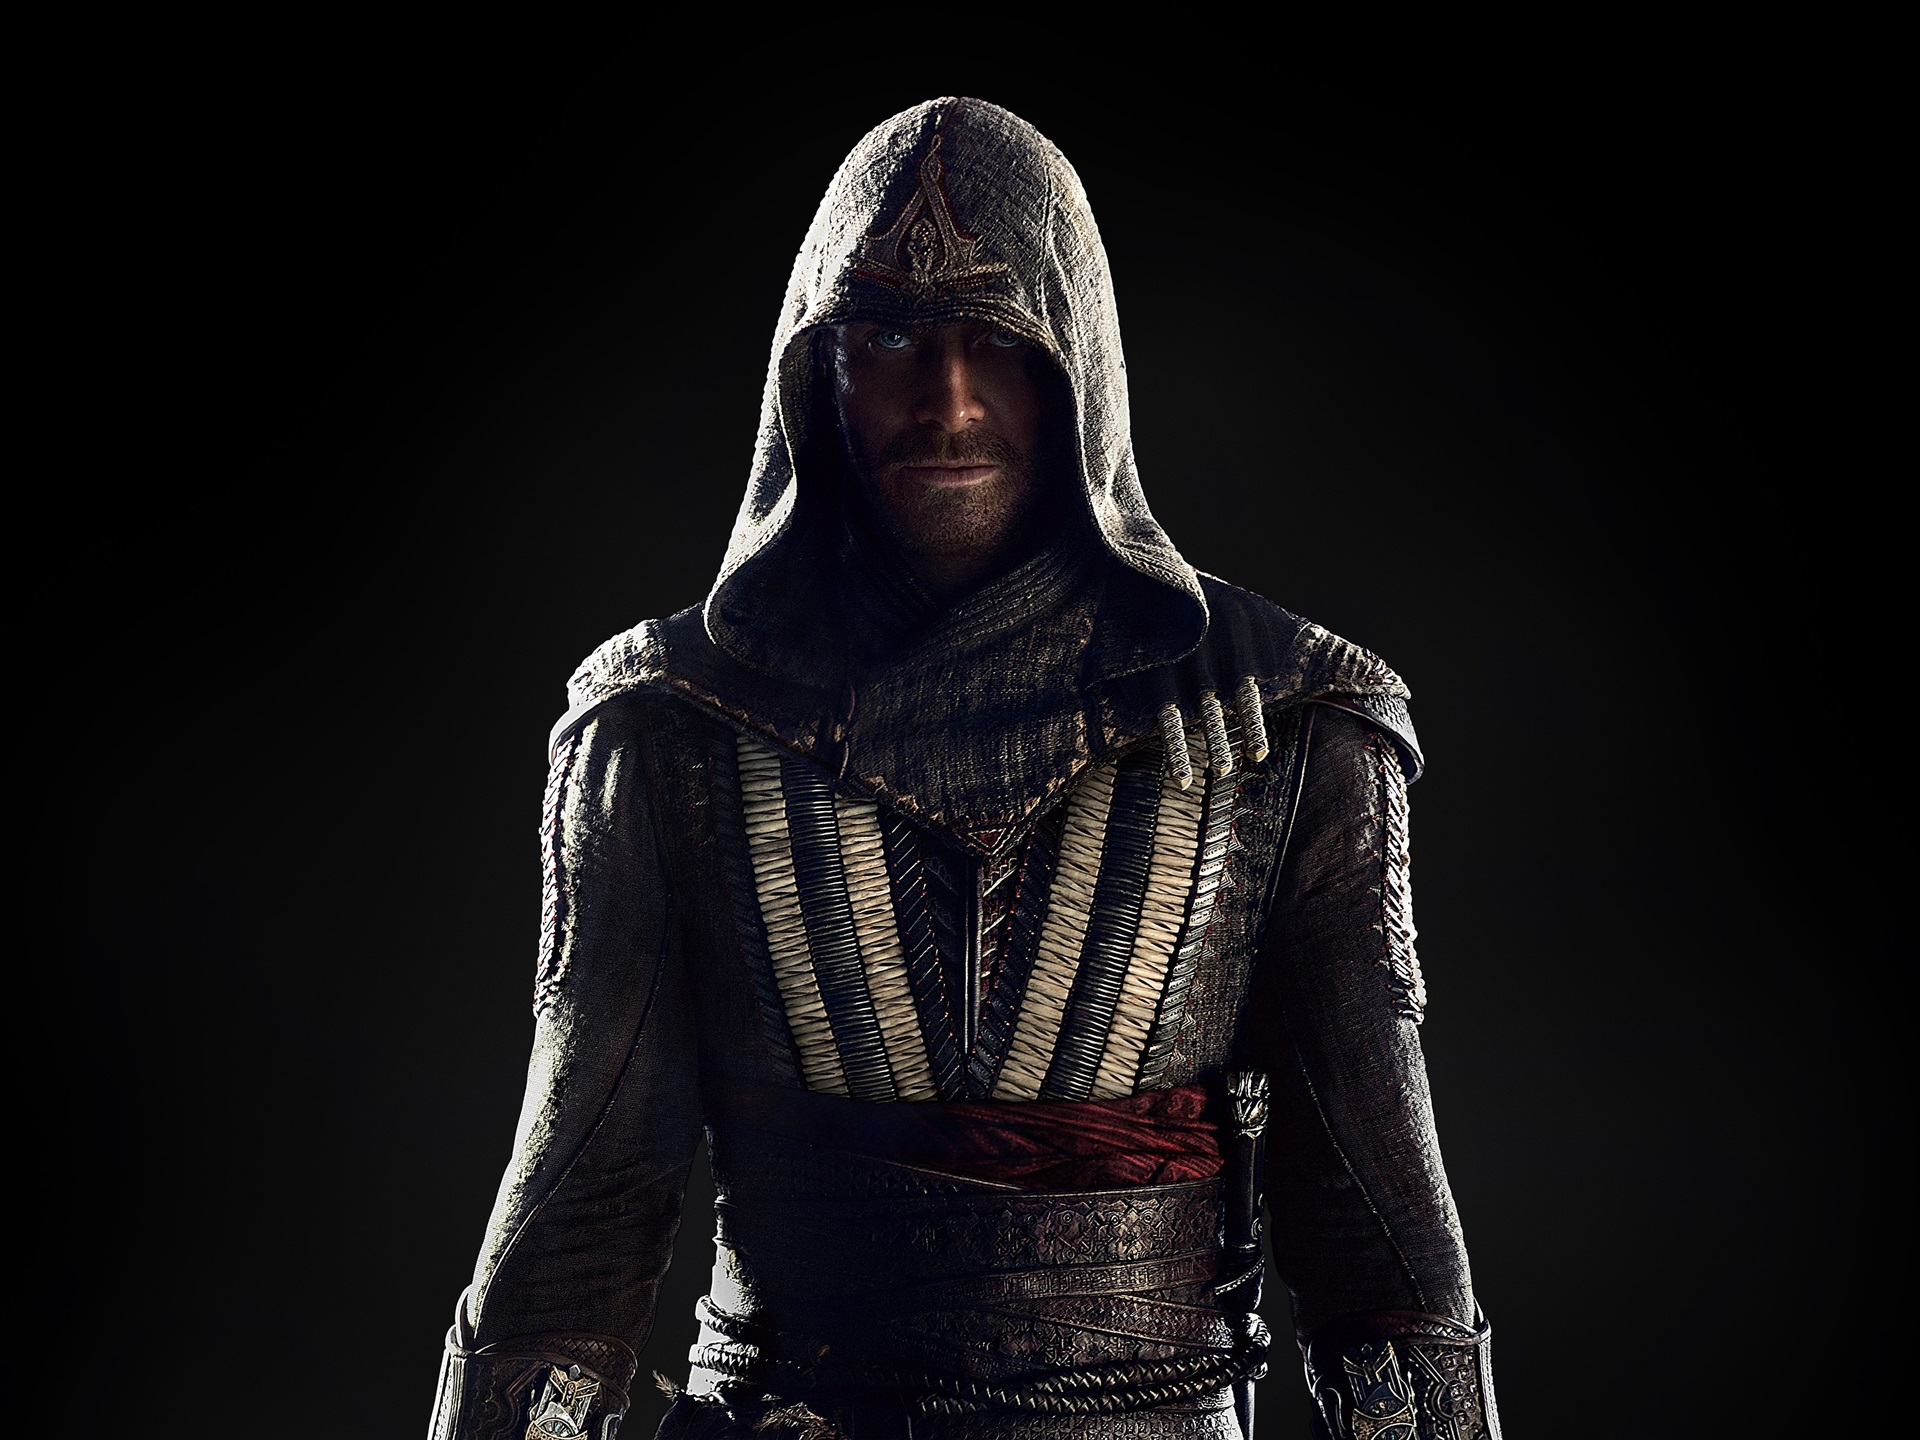 1920x1440 HD Wallpaper Michael Fassbender, Assassin's Creed 2016 movie